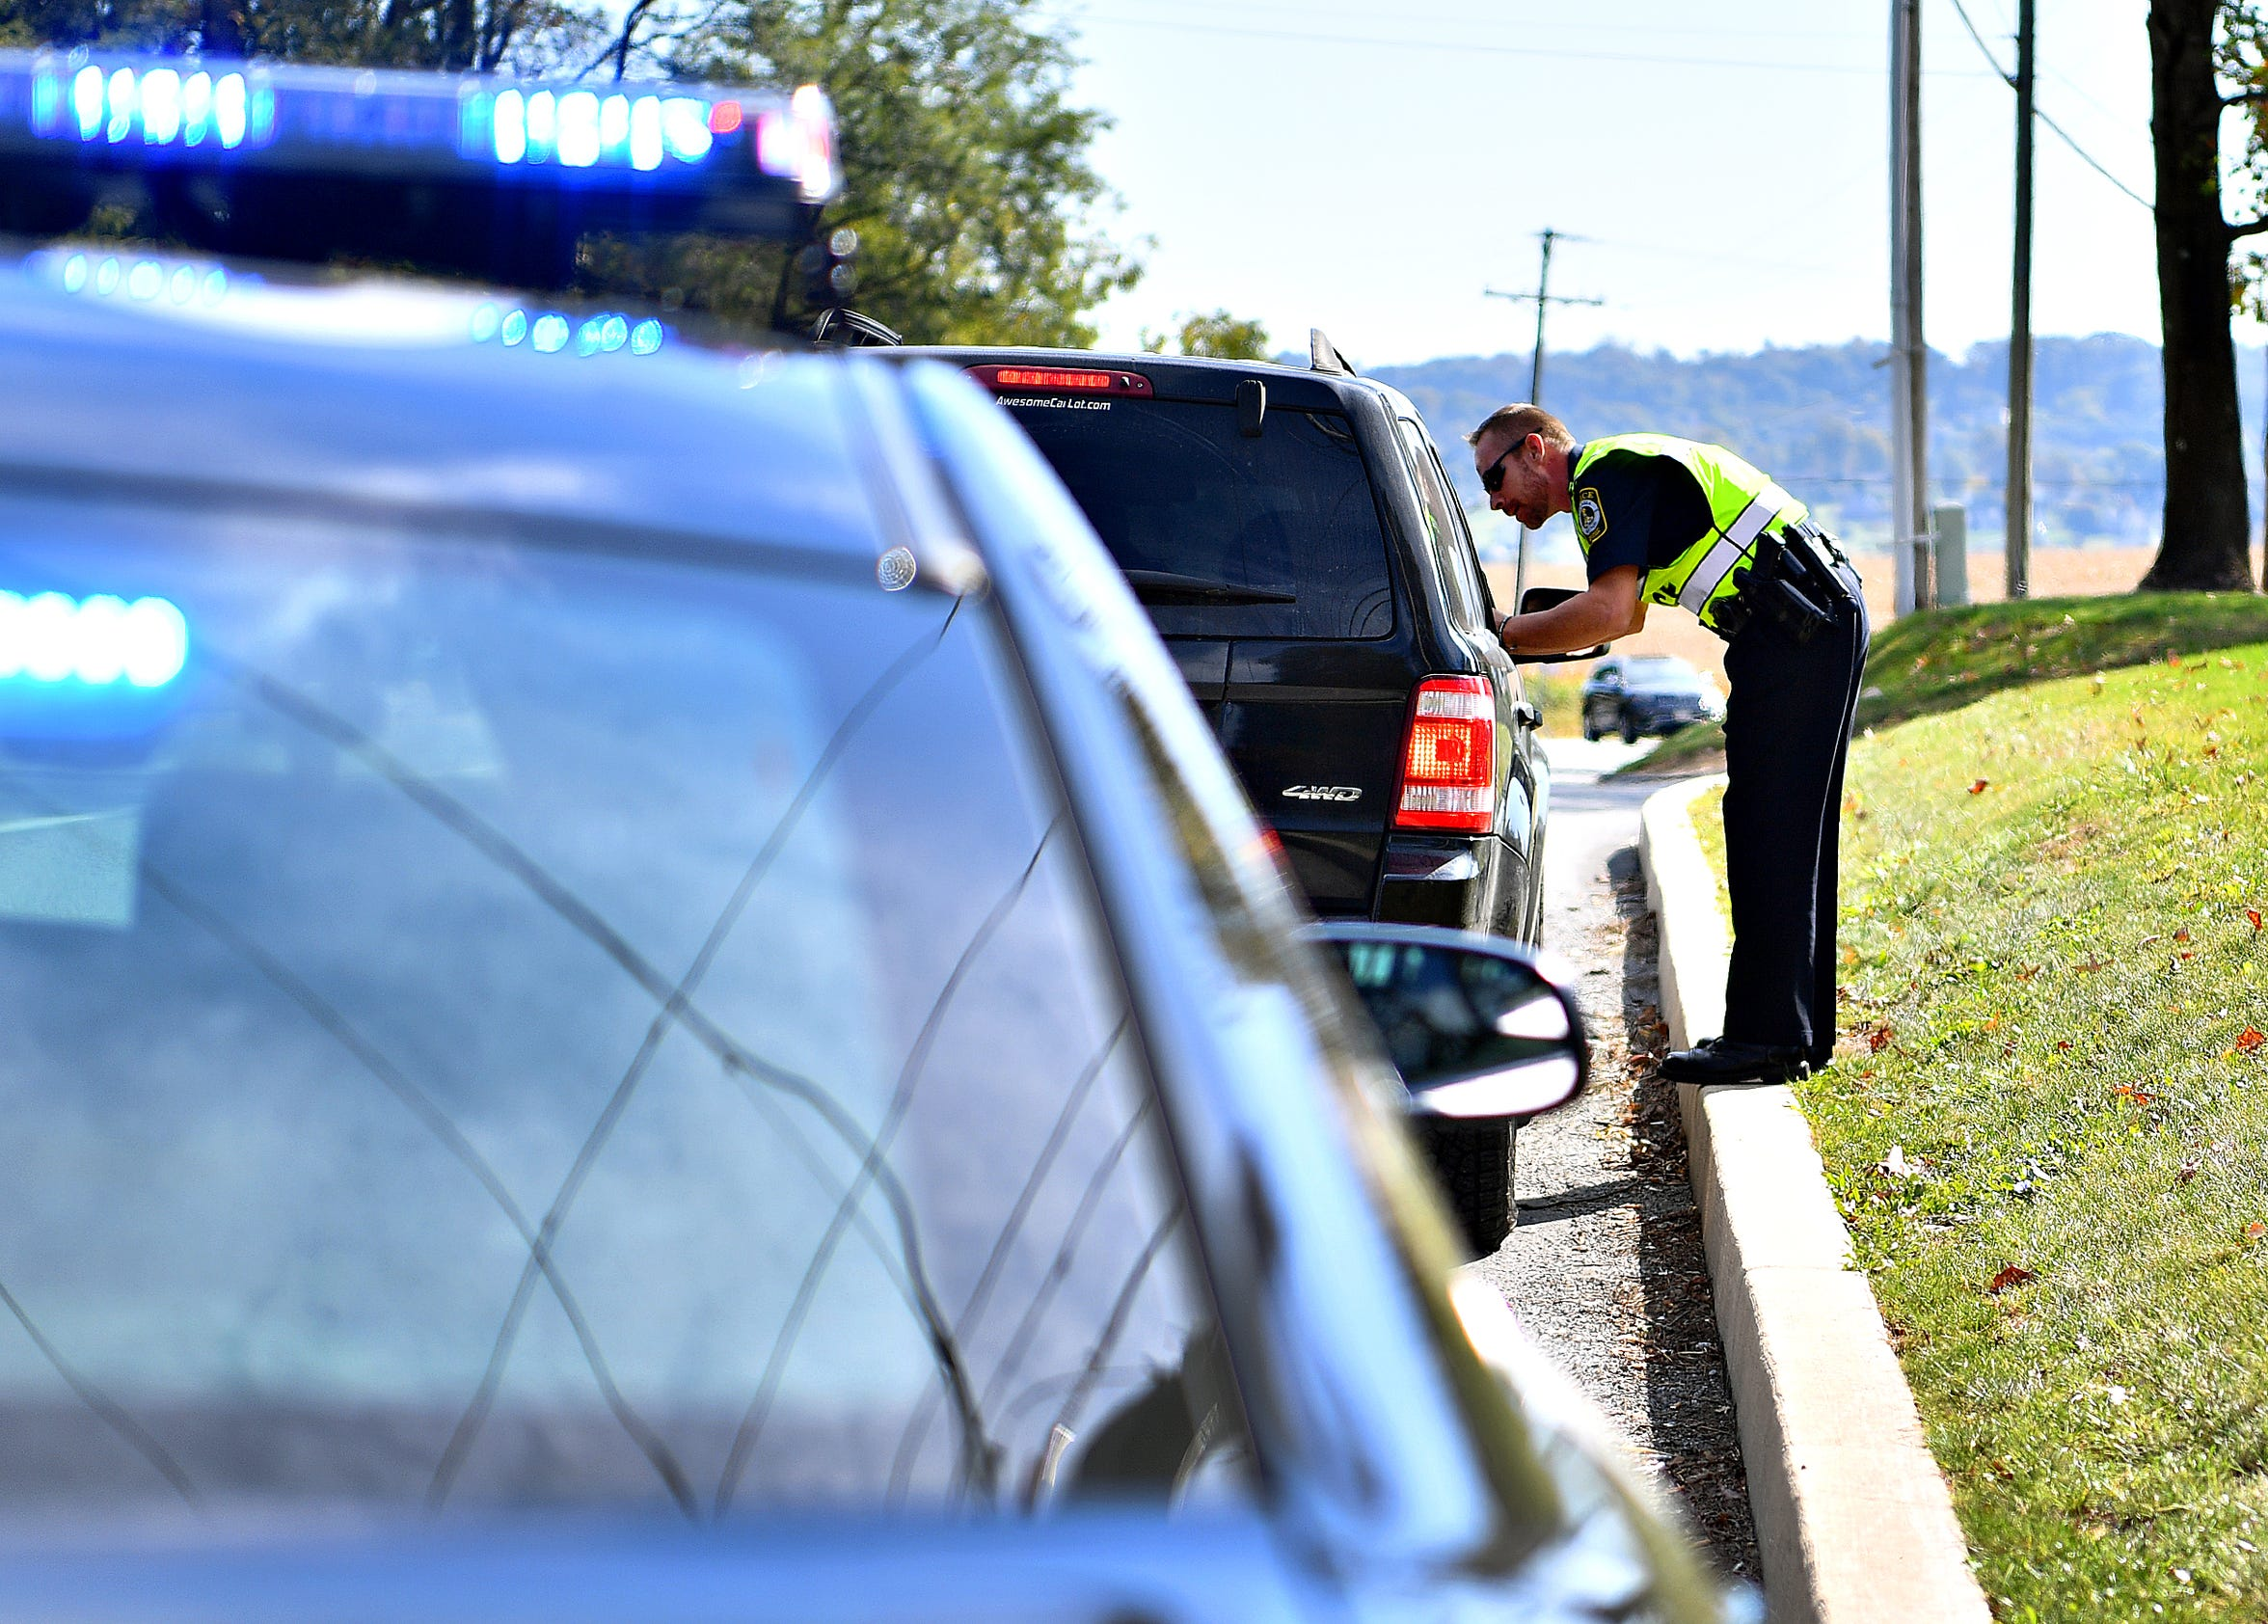 York Area Regional Police Officer Michael Schiffhauer makes a traffic stop on Cape Horn Road using ENRADD (Electronic Non Radar Device) in Windsor Township, Tuesday, Oct. 15, 2019. Dawn J. Sagert photo